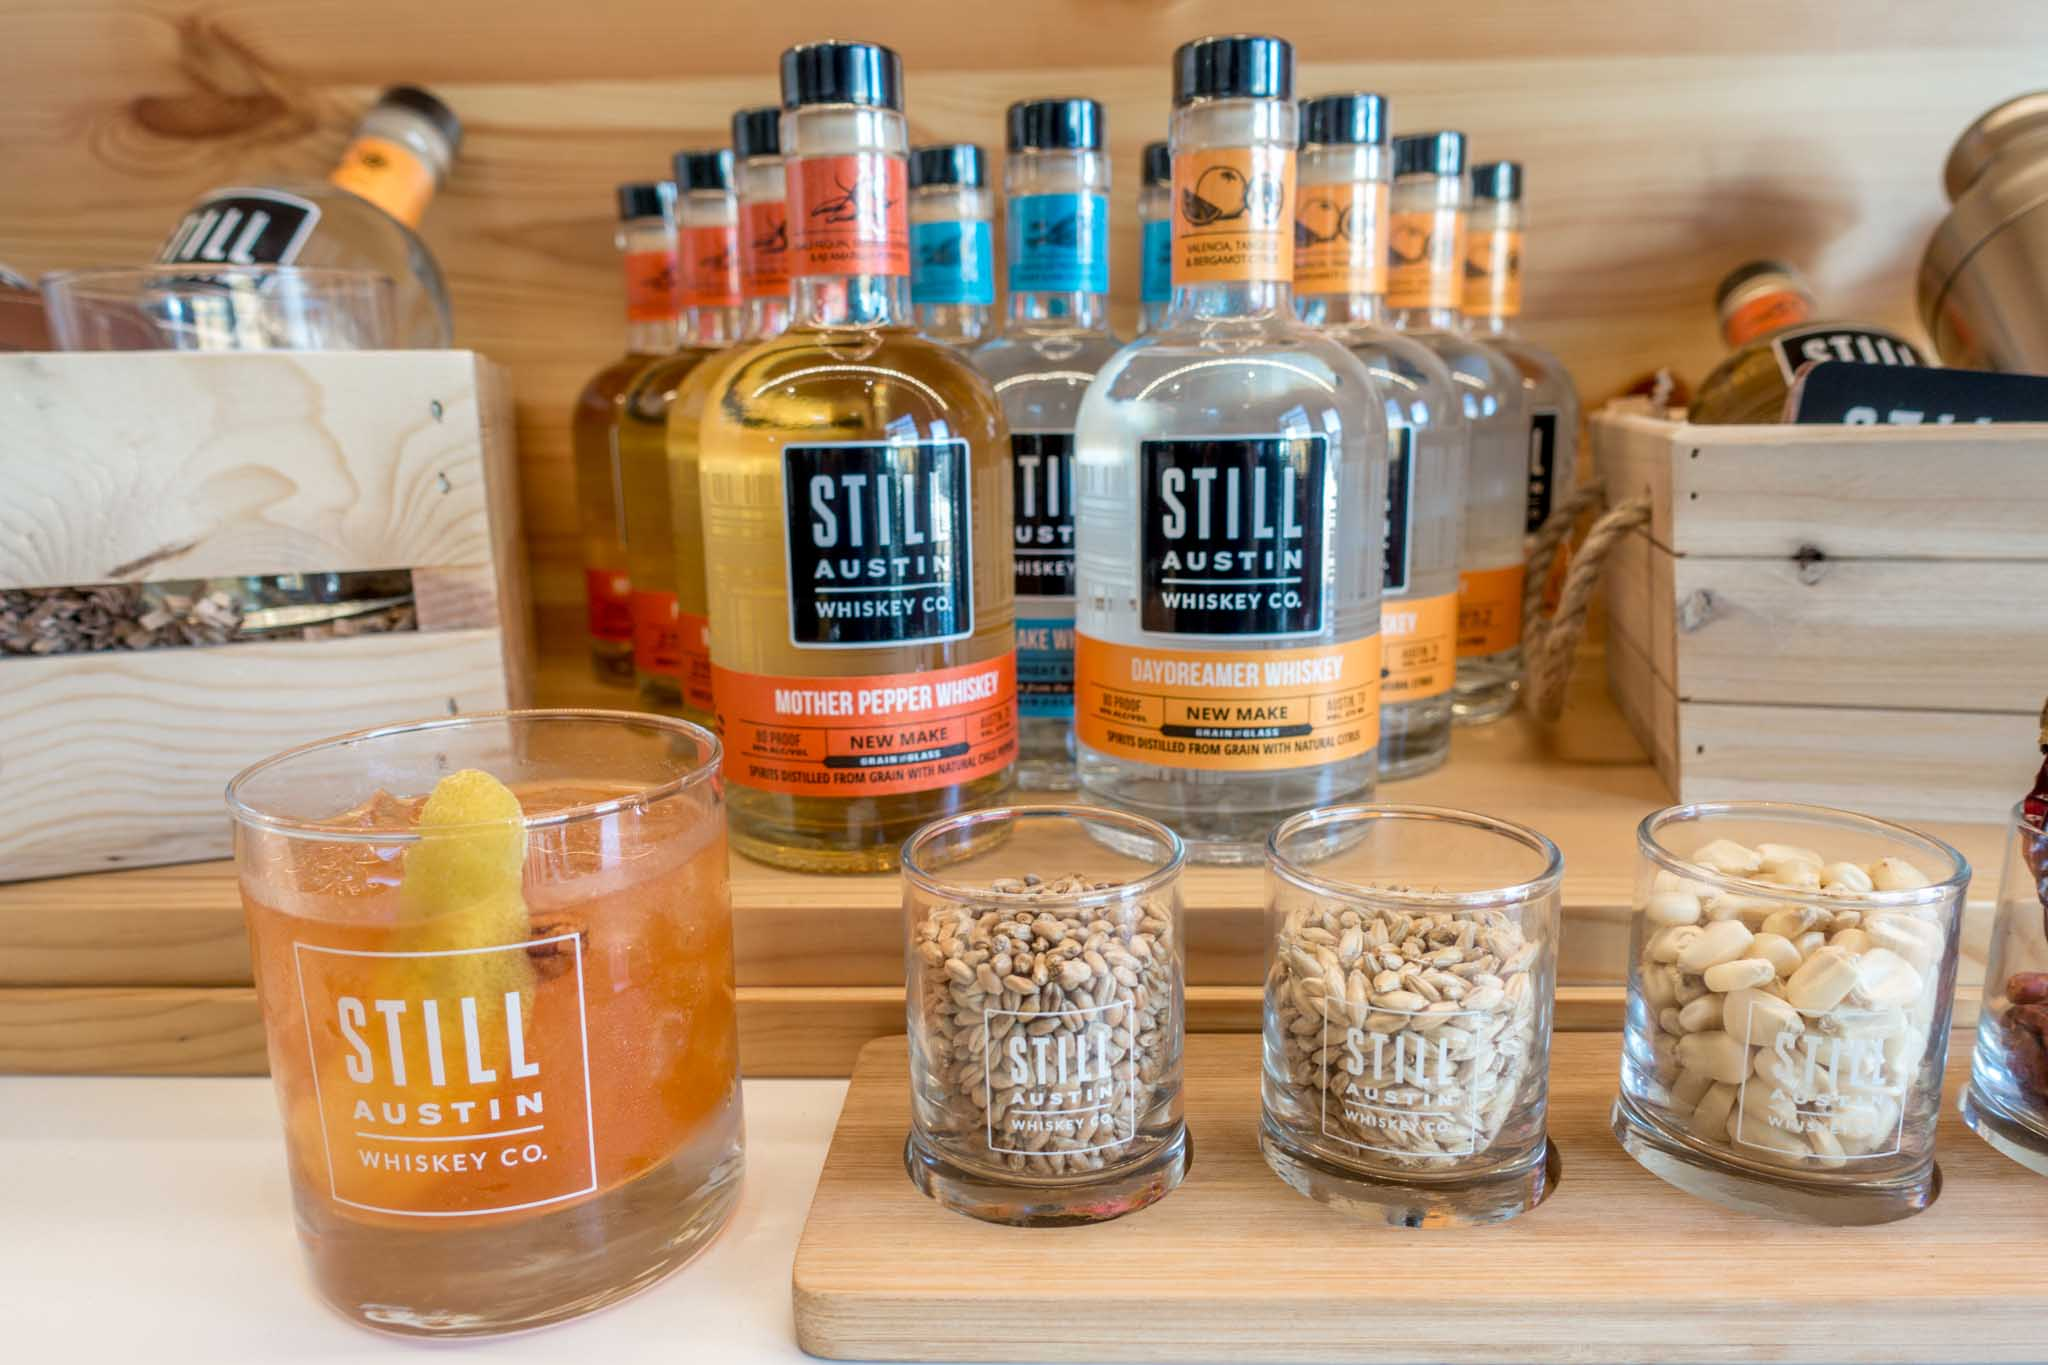 Bottles and cocktail glass labeled as Still Austin Whiskey Co.